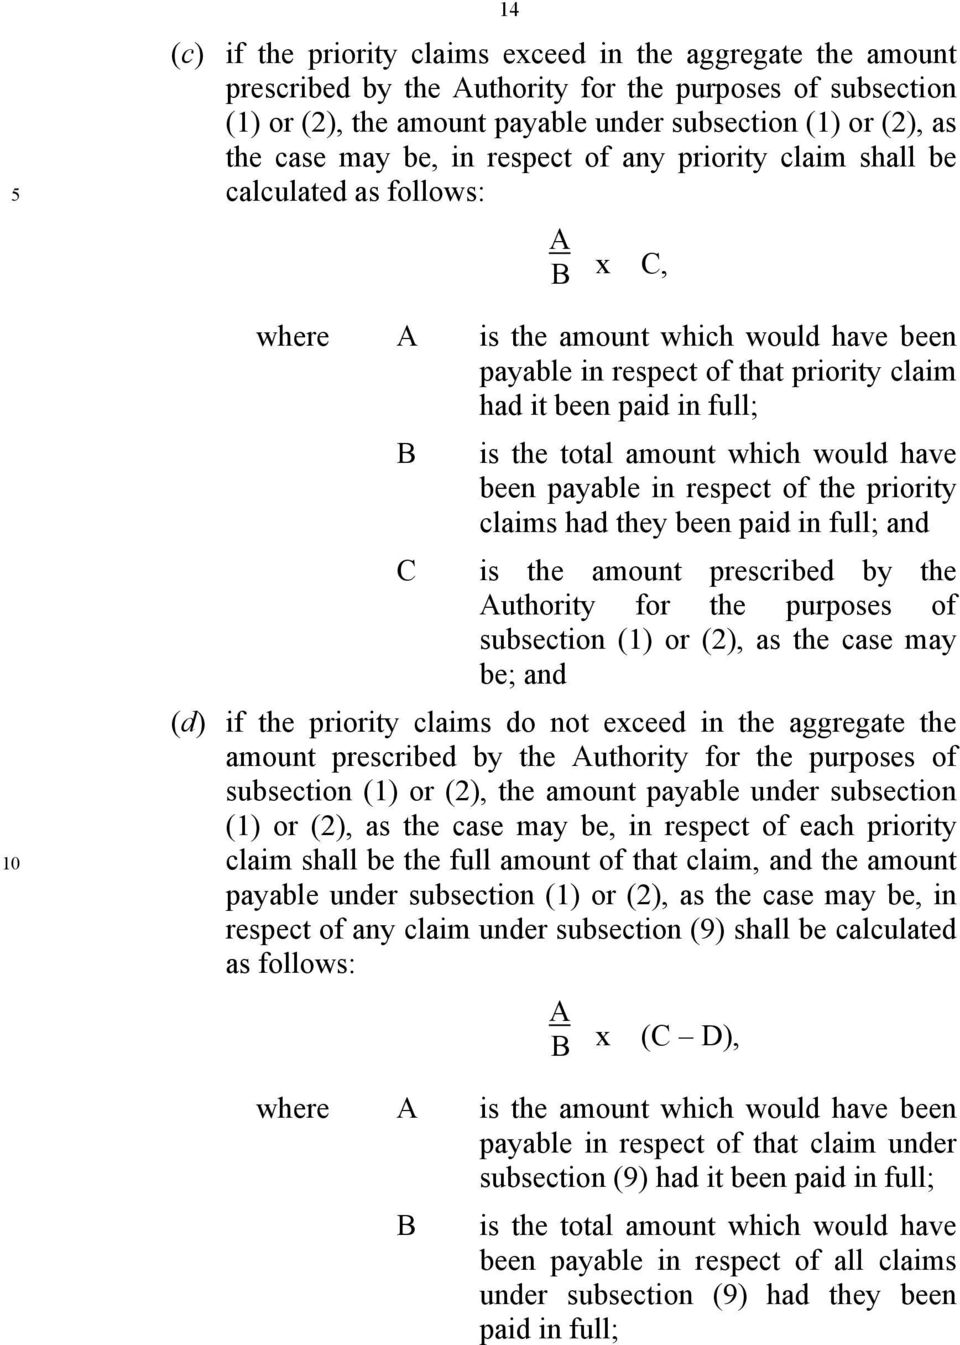 total amount which would have been payable in respect of the priority claims had they been paid in full; and C is the amount prescribed by the Authority for the purposes of subsection (1) or (2), as